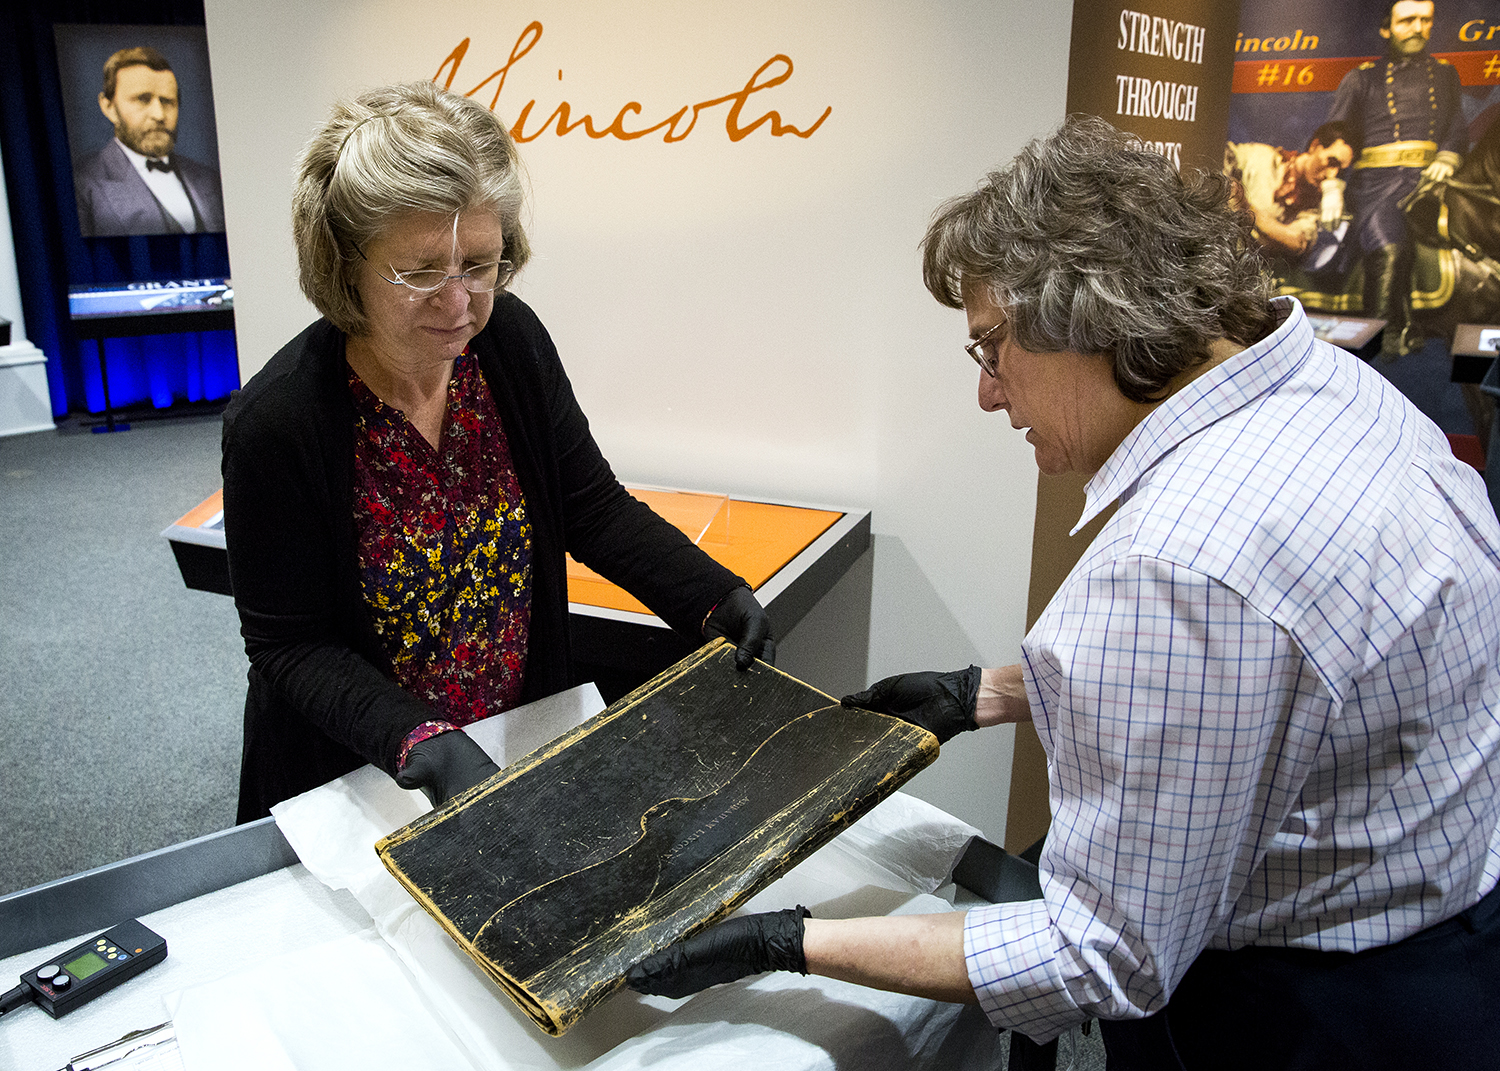 Carla Smith, left, registrar for the Abraham Lincoln Presidential Library and Museum, and Bonnie Parr, historical documents conservator at the presidential library, move a leather folio used by Abraham Lincoln to an exhibit case for a special exhibit that coincides with the Illinois bicentennial Wednesday, March 21, 2018 at the presidential museum. ÒFrom Illinois to the White House: Lincoln, Grant, Reagan, Obama,Ó honors the four U.S. presidents with close ties to the state. It opens Friday to the public. [Rich Saal/The State Journal-Register]